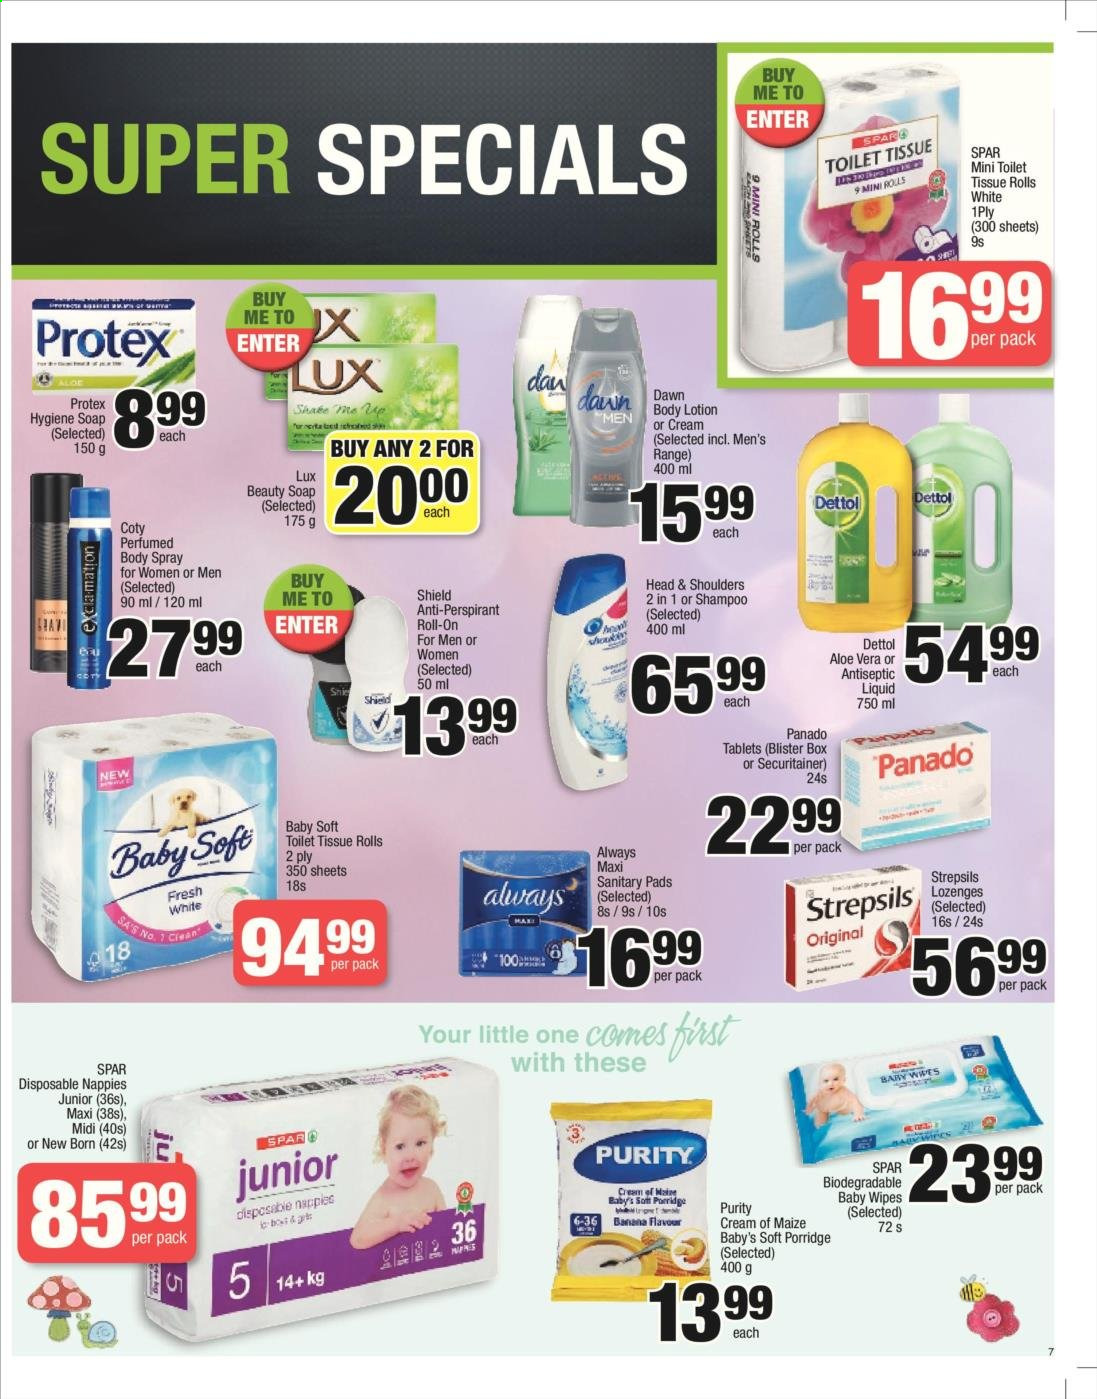 SPAR catalogue  - 06.04.2019 - 06.23.2019. Page 7.